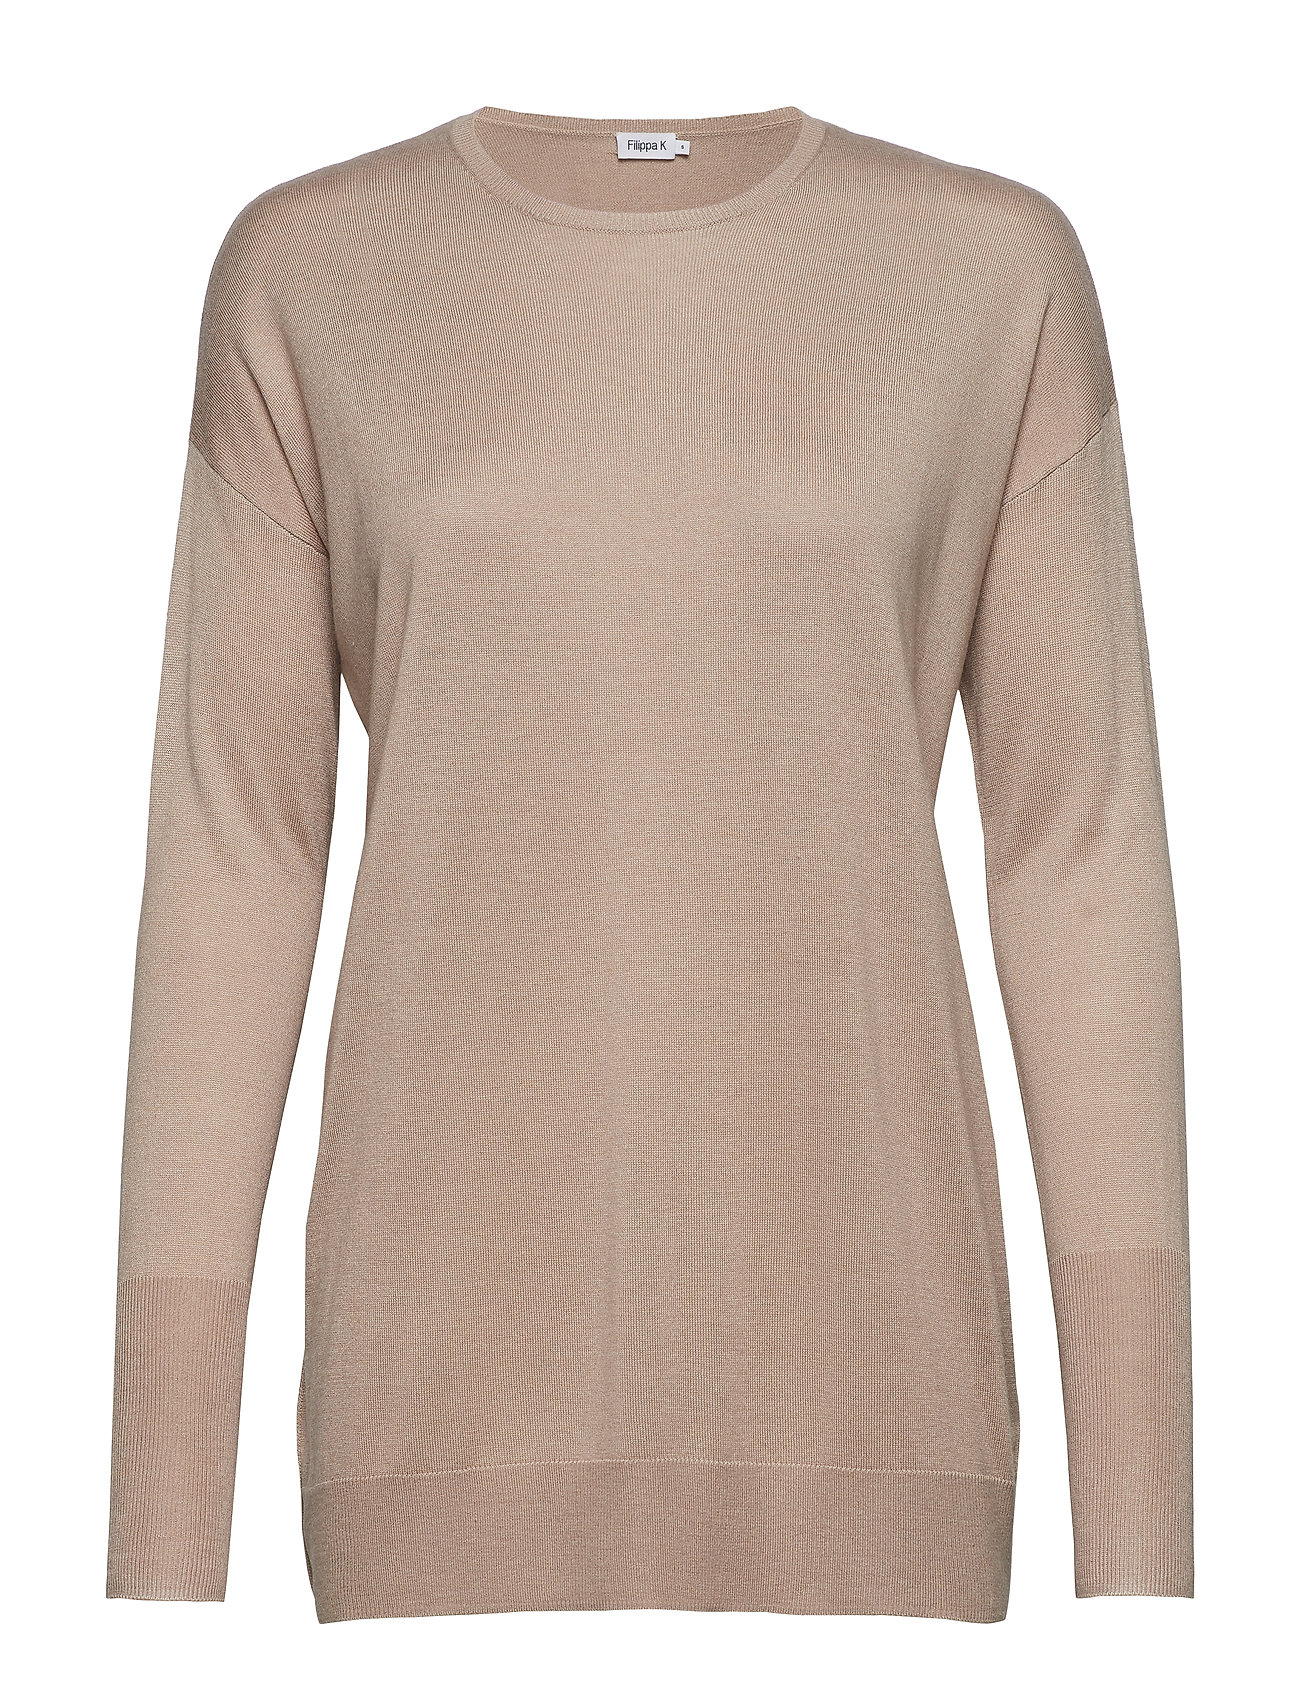 Filippa K Silky Fine Knit Sweater - LIGHT TAUP